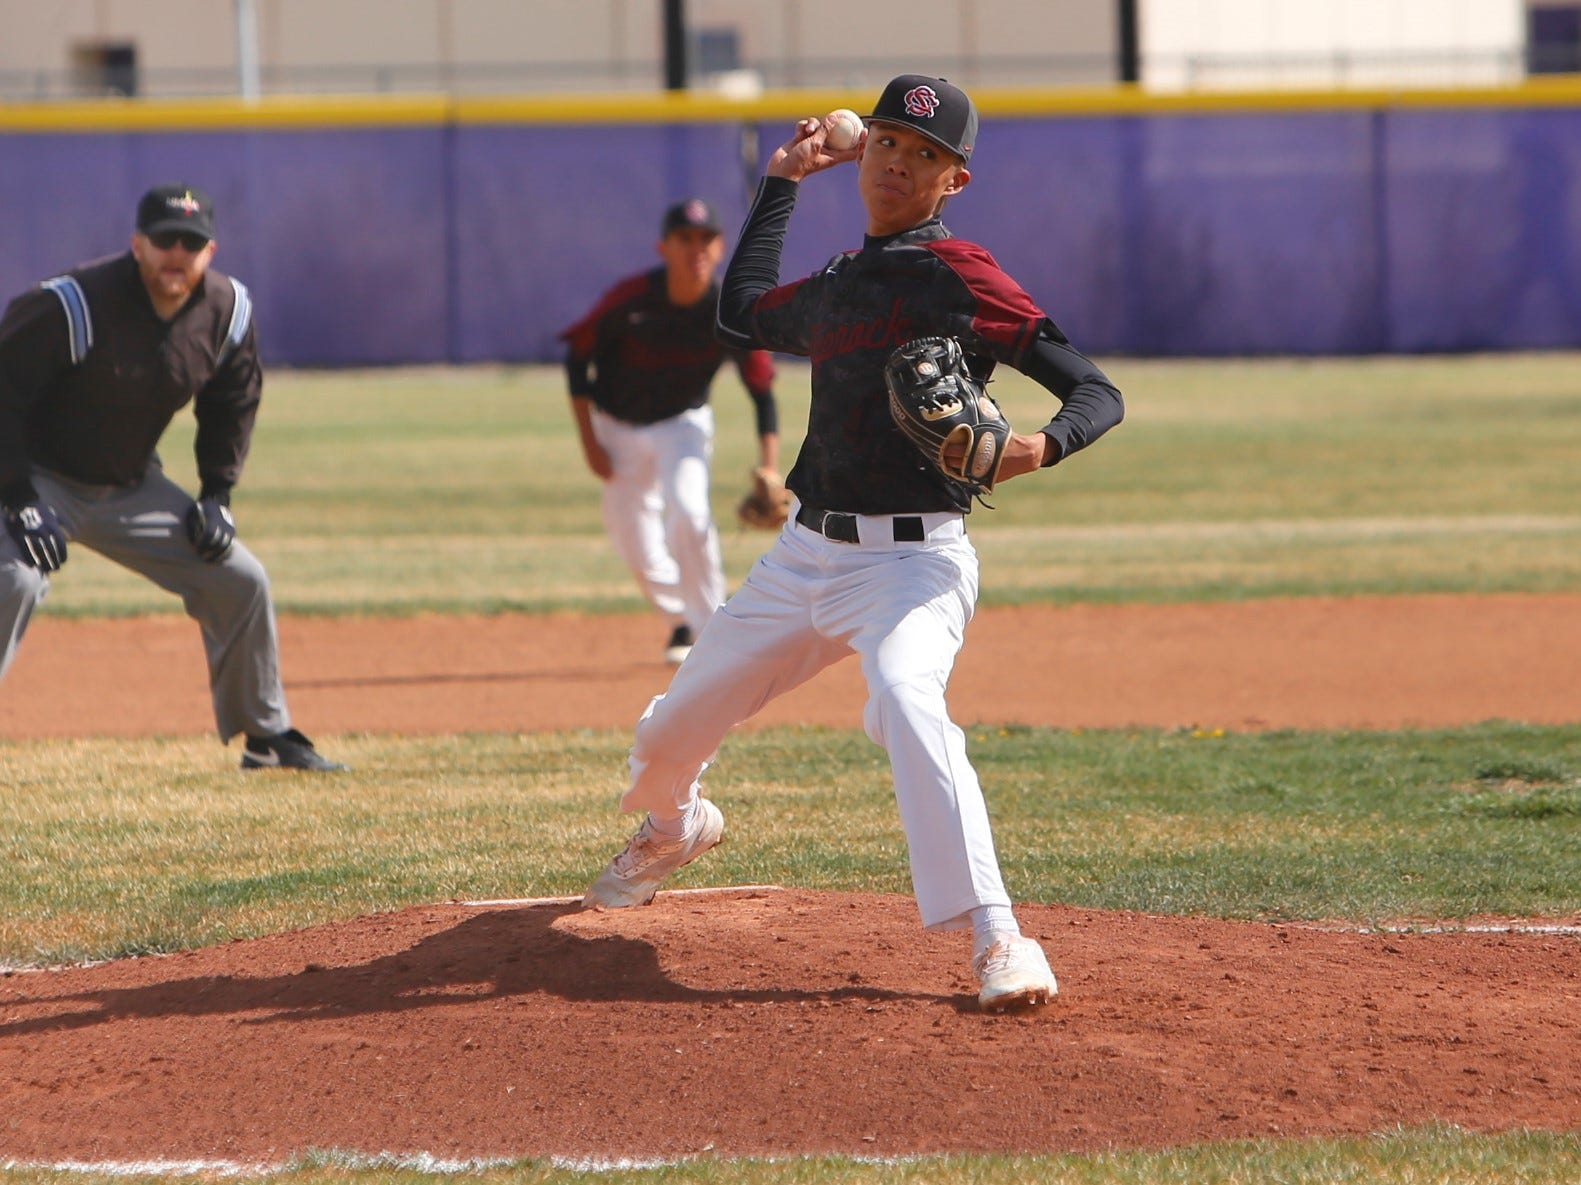 Shiprock's Kobe Allen fires a pitch against Kirtland Central during Thursday's District 1-4A game at KCHS.